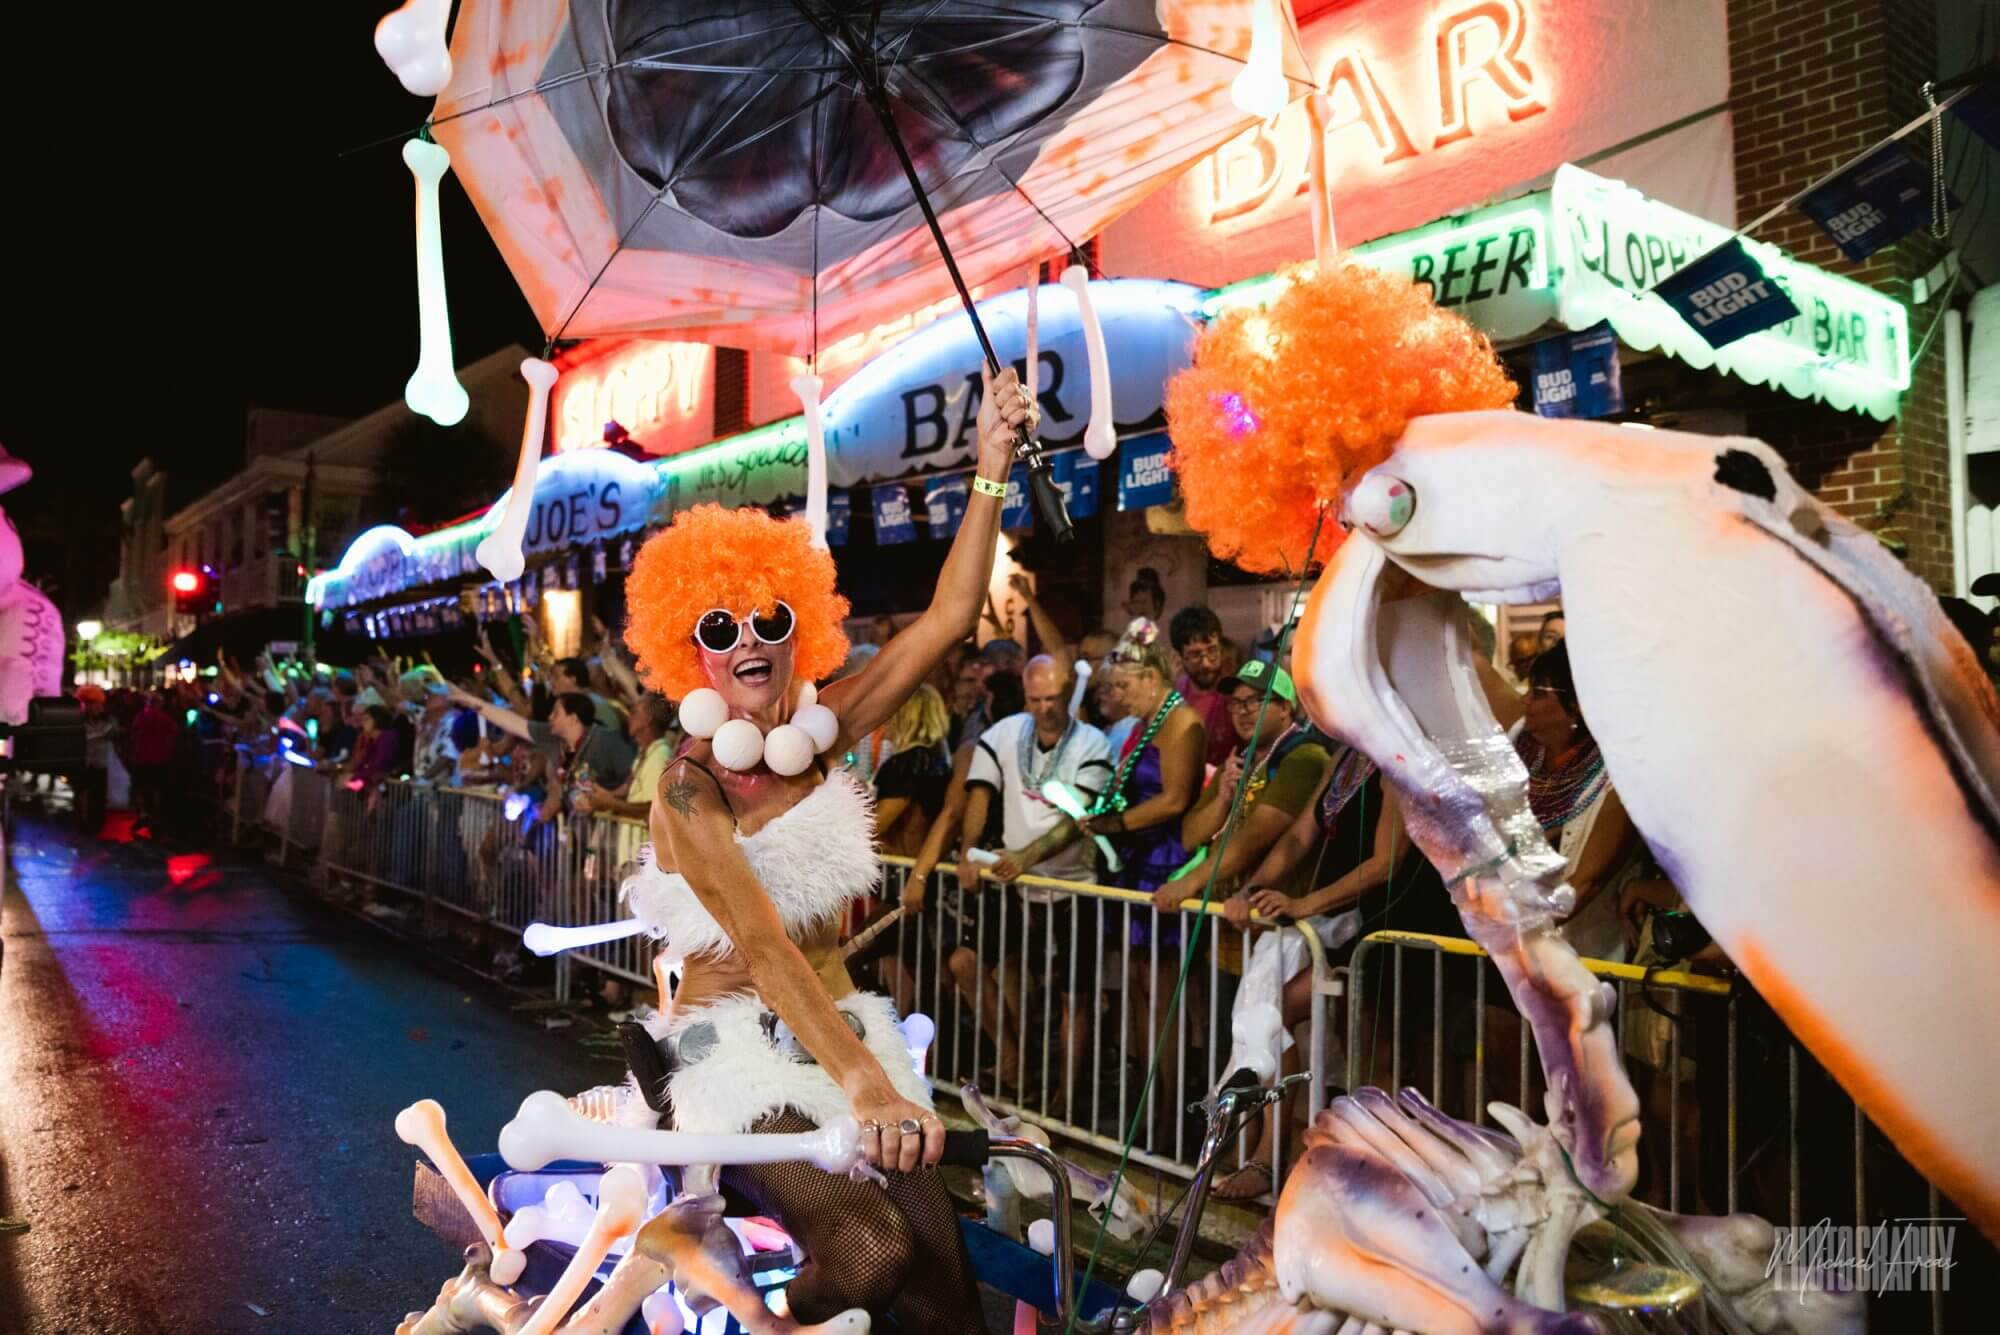 michael freas photography bud light parade 31 - Fantasy Fest 2017 - From the Lens of a Key West Photographer